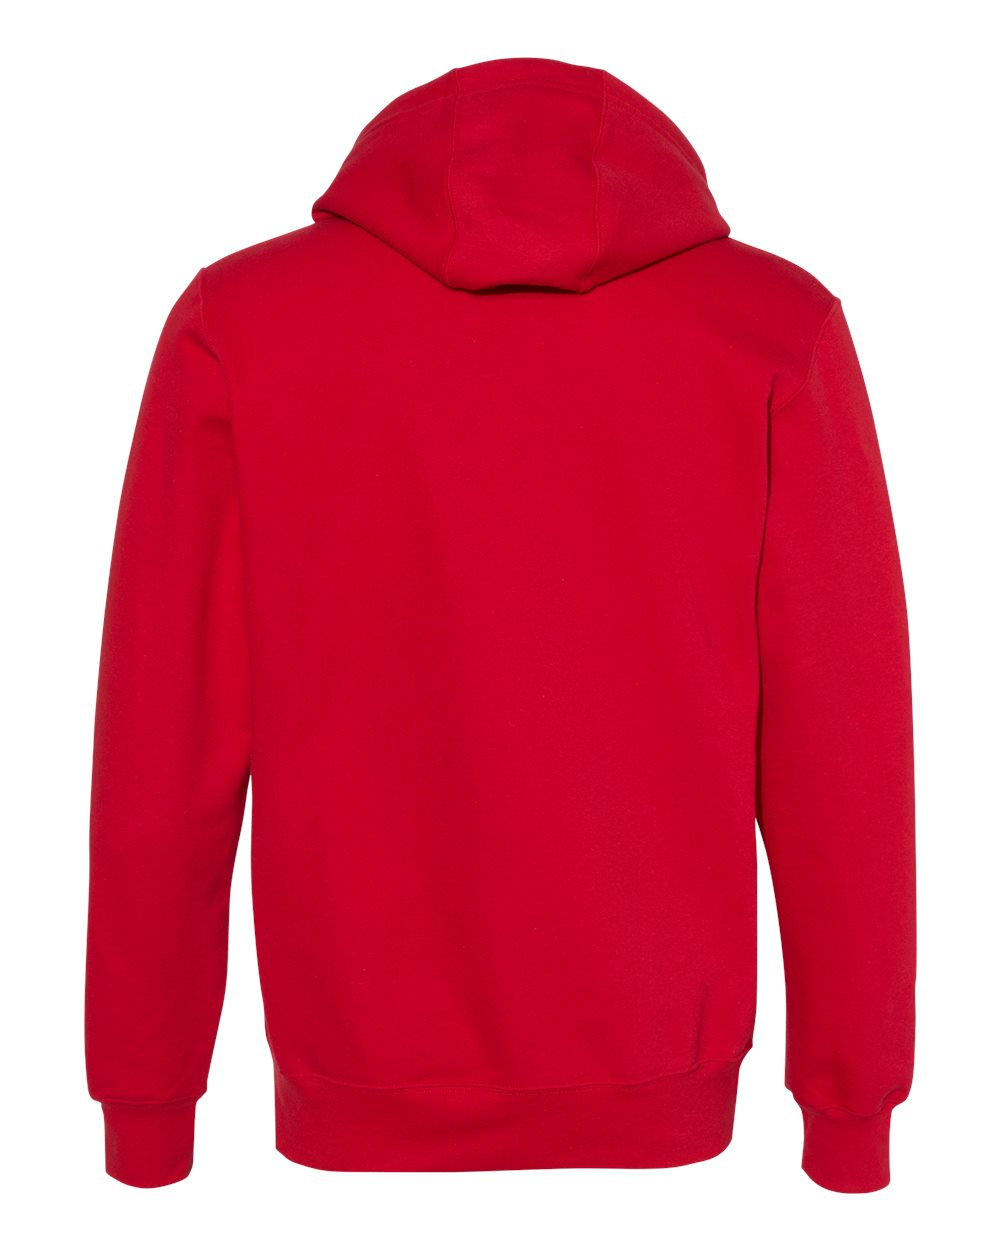 Russell-Athletic-Mens-Cotton-Rich-Fleece-Hooded-Sweatshirt-82ONSM-up-to-3XL miniature 25